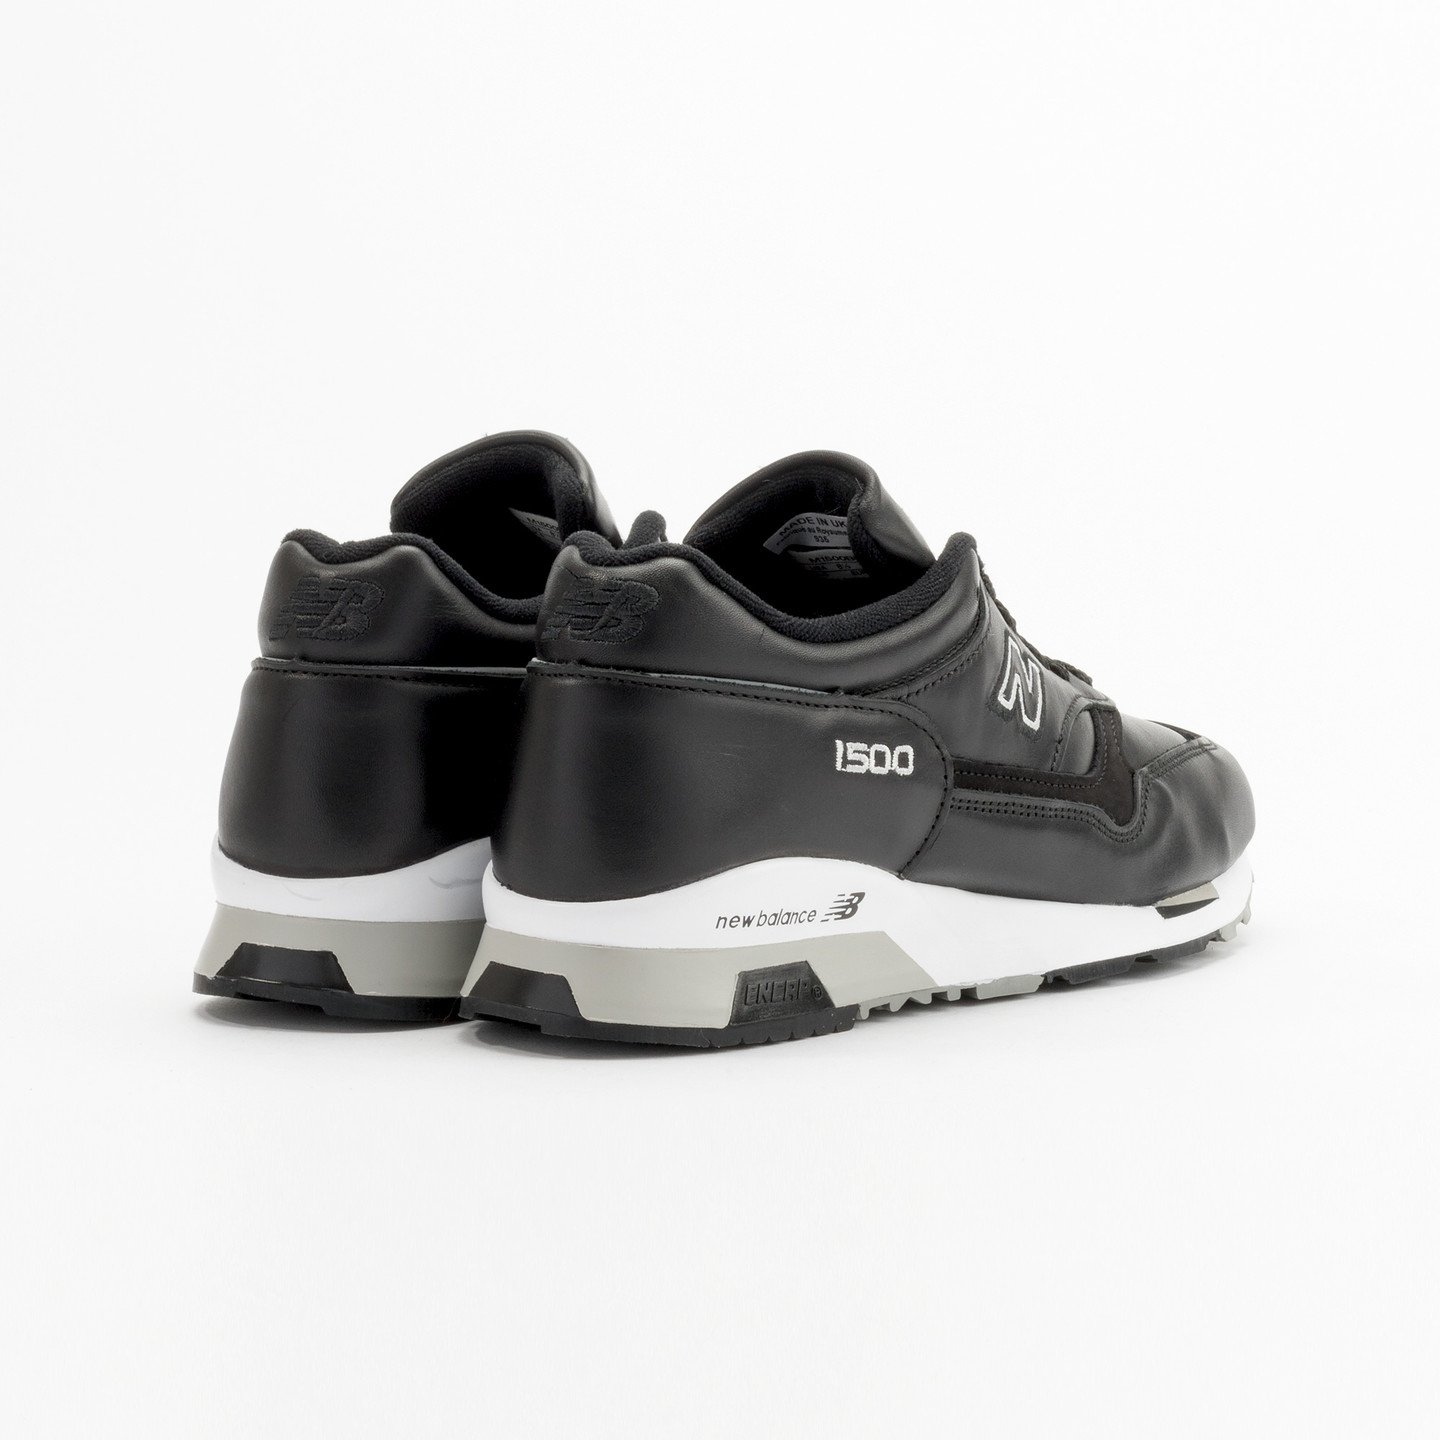 New Balance M1500 BK - Made in England Black / White Shadow M1500BK-42.5